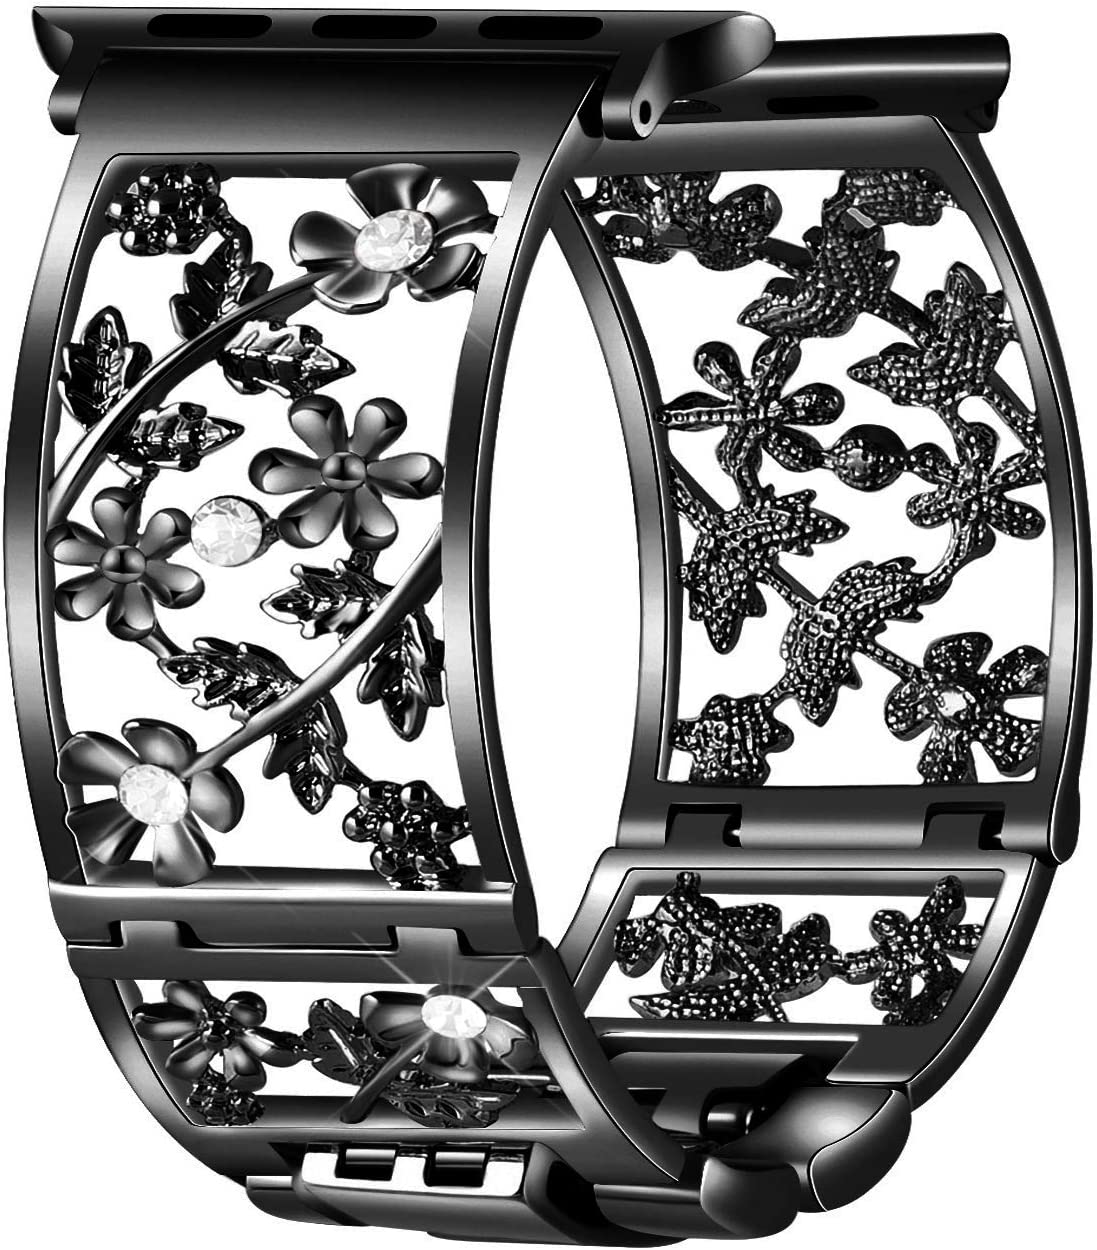 Duoan Floral Band Compatible with Apple Watch Band 38mm 40mm 42mm 44mm iWatch Bands Series 6 5 4 3 2, Bling Crystal Bracelet Hollow Metal Cuff Dressy, Fashion Women Jewelry Wristband(38mm/40mm Black)